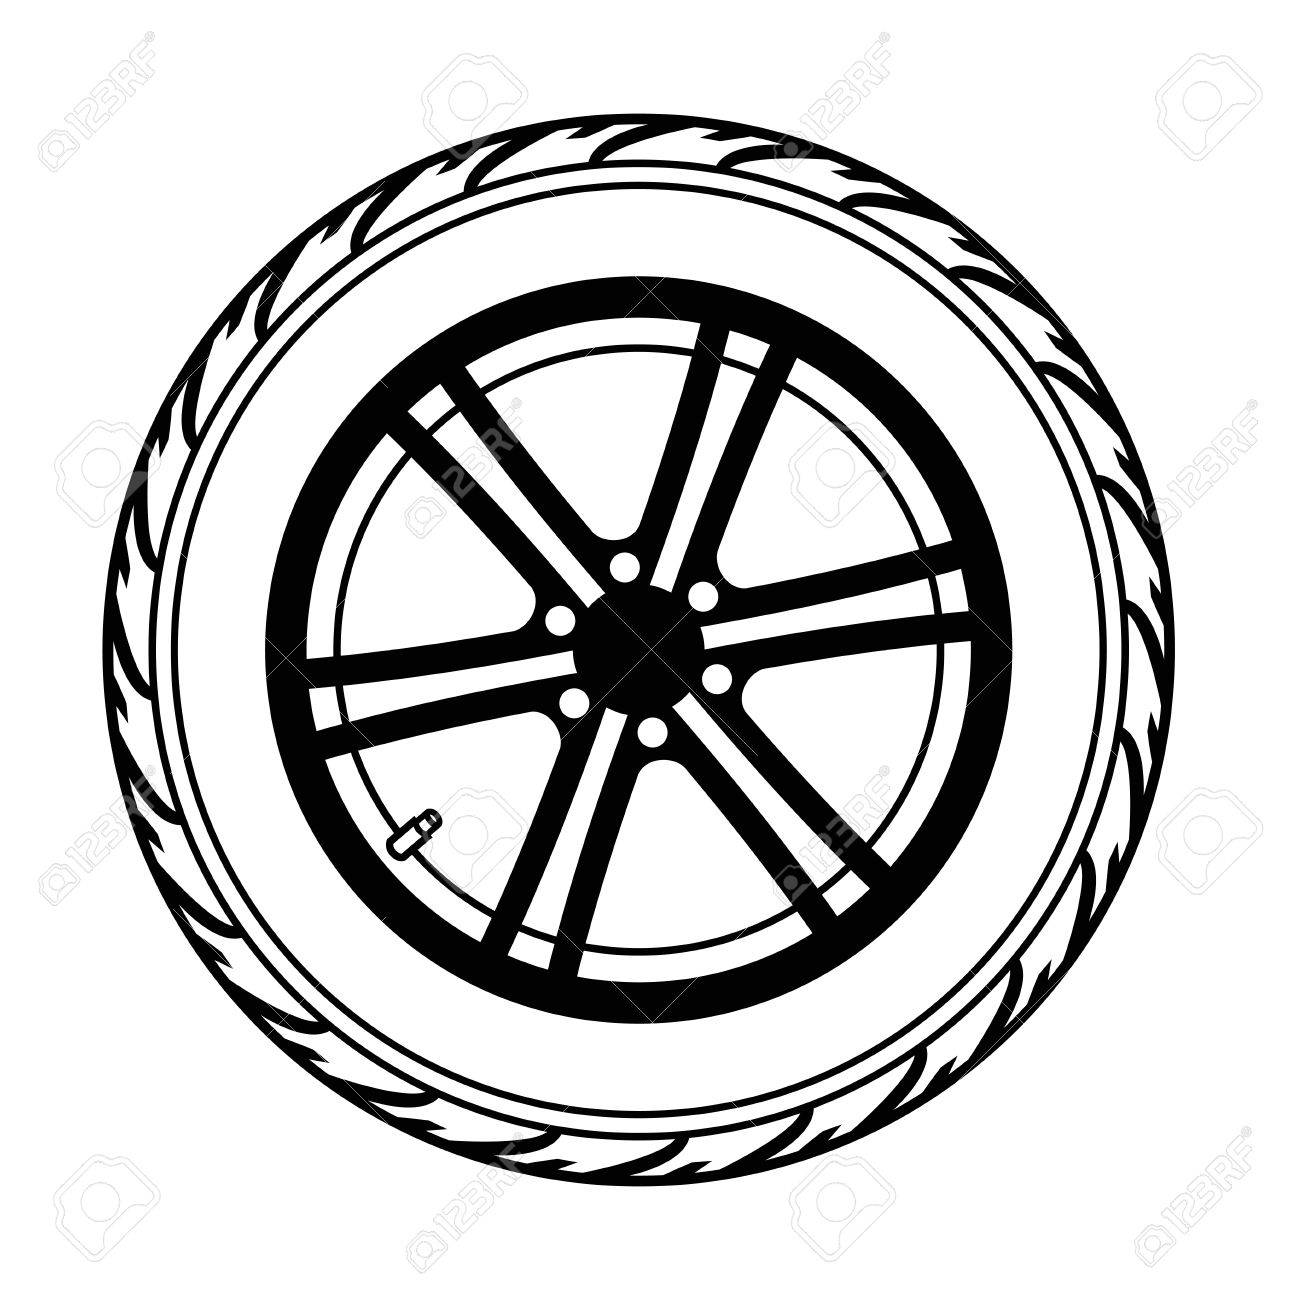 Black And White Clipart Wheel.